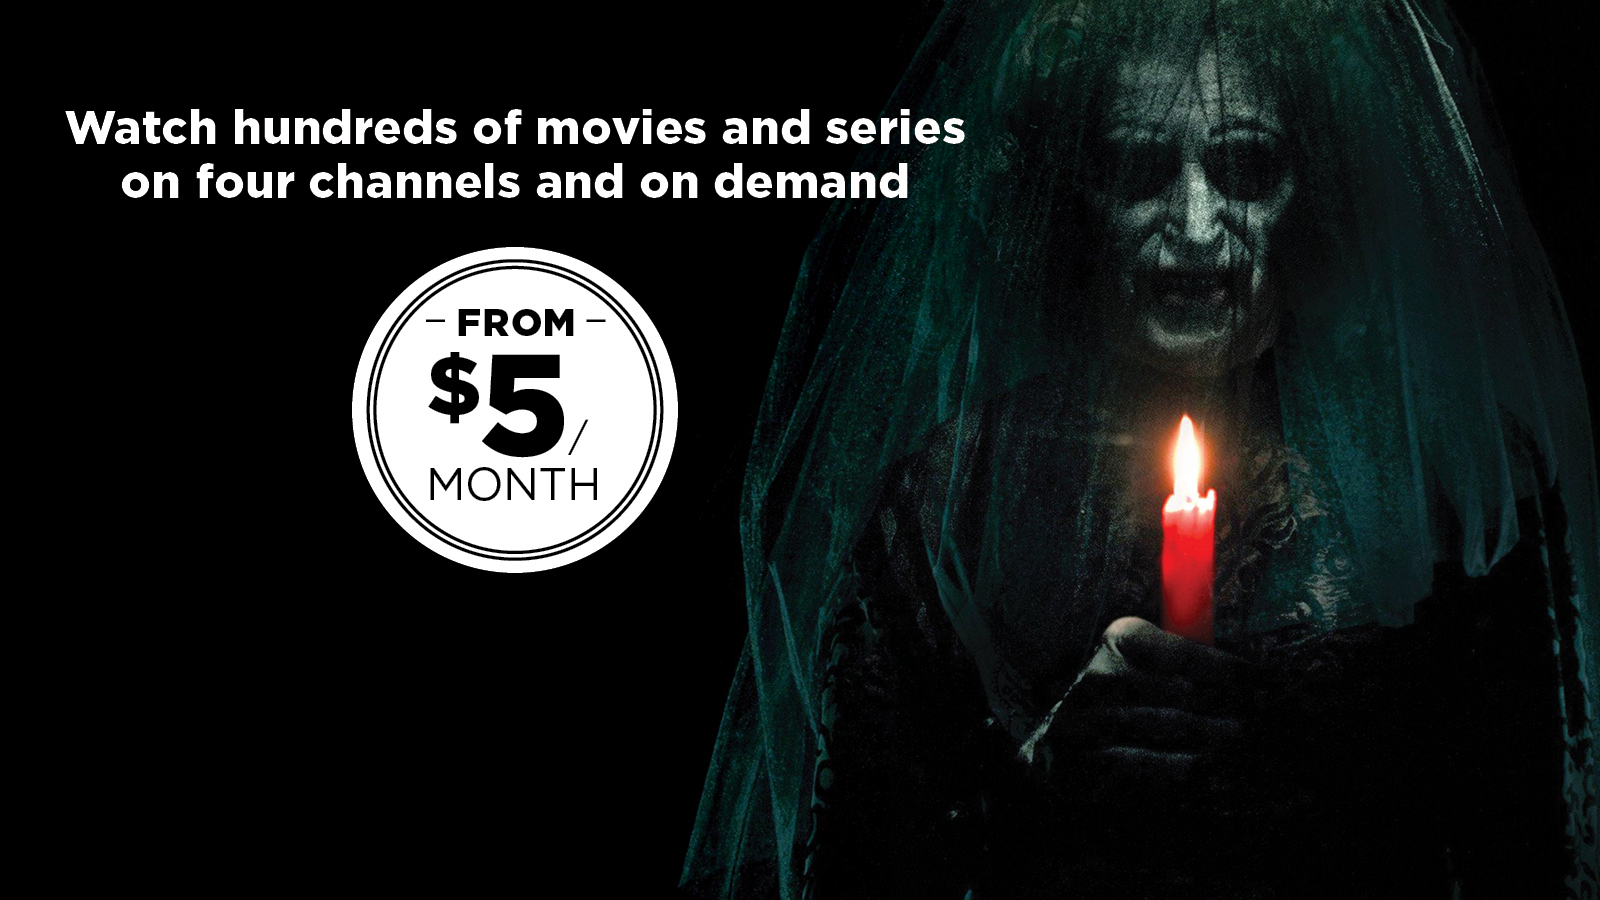 Hundreds of movies and series on 4 channels and on demand from $5 a month